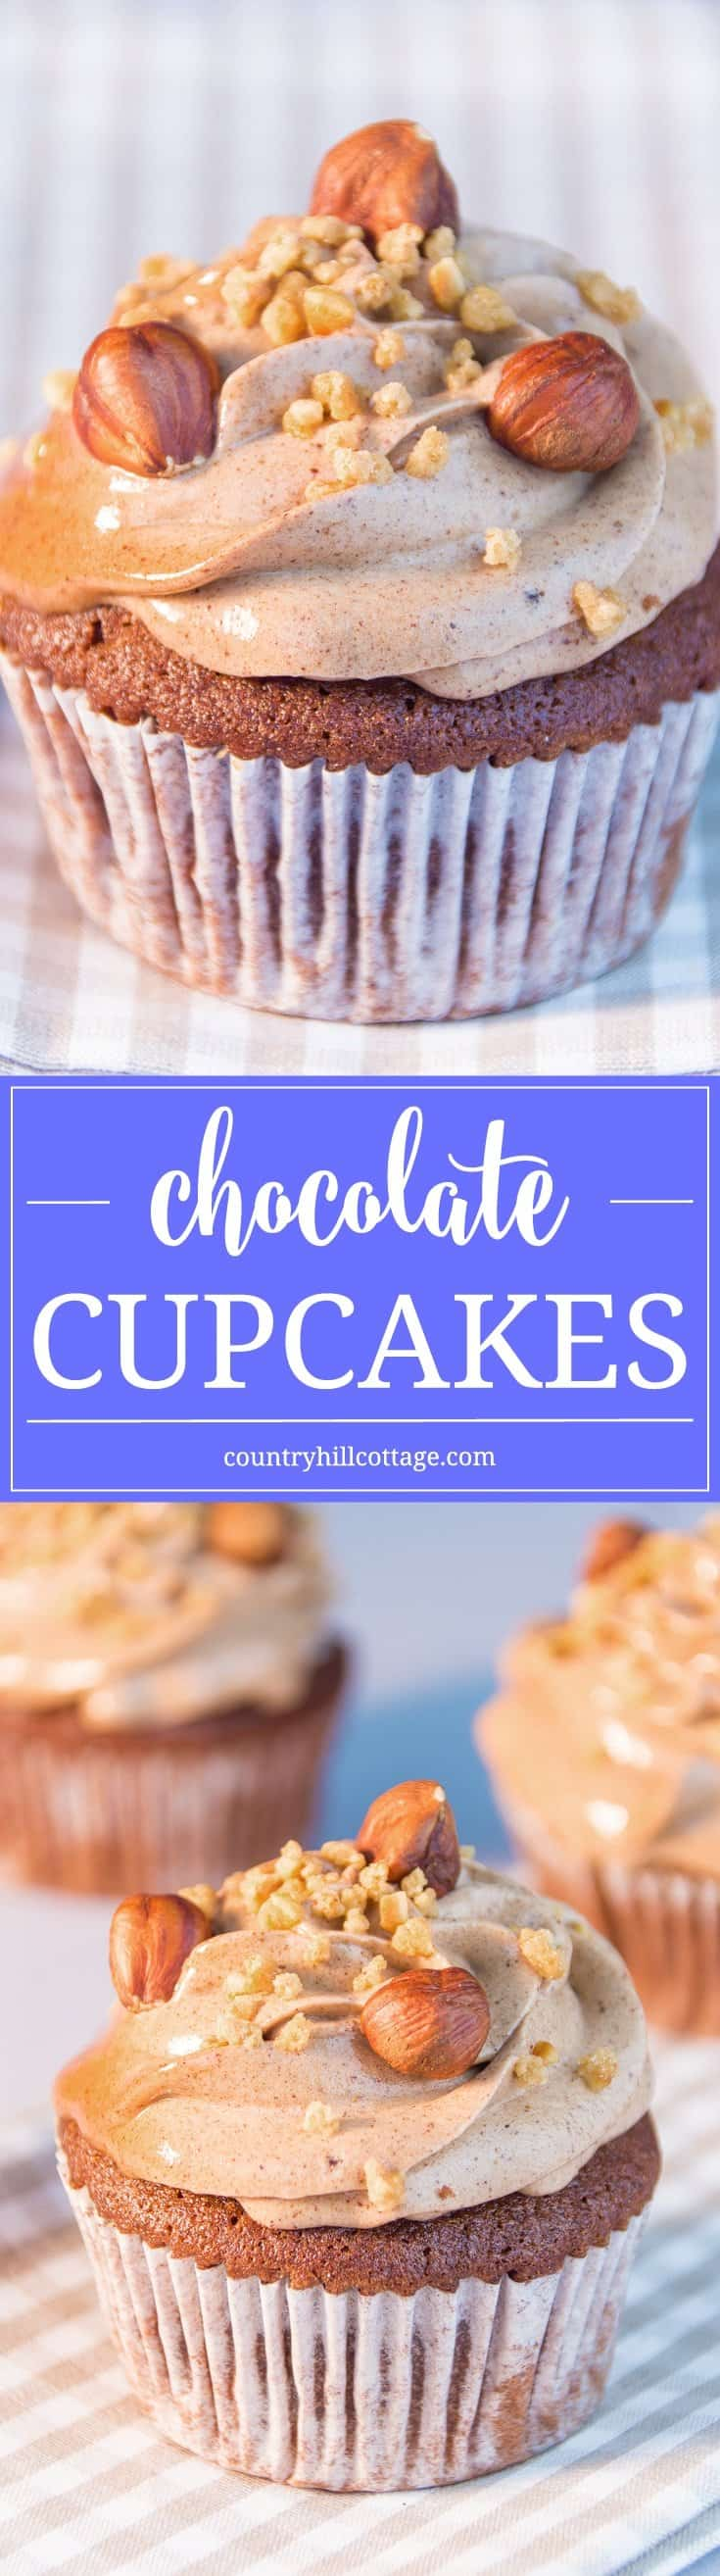 Every baker needs a true-and-tested chocolate cupcakes recipe in her repertoire. Our version is light, albeit chocolaty, quick to whip up and uses only pantry staples. It's perfect to satisfy the occasional midnight chocolate cravings or to cater for a bunch of hungry kids. #chocolate #cupcake #recipe | countryhillcottage.com